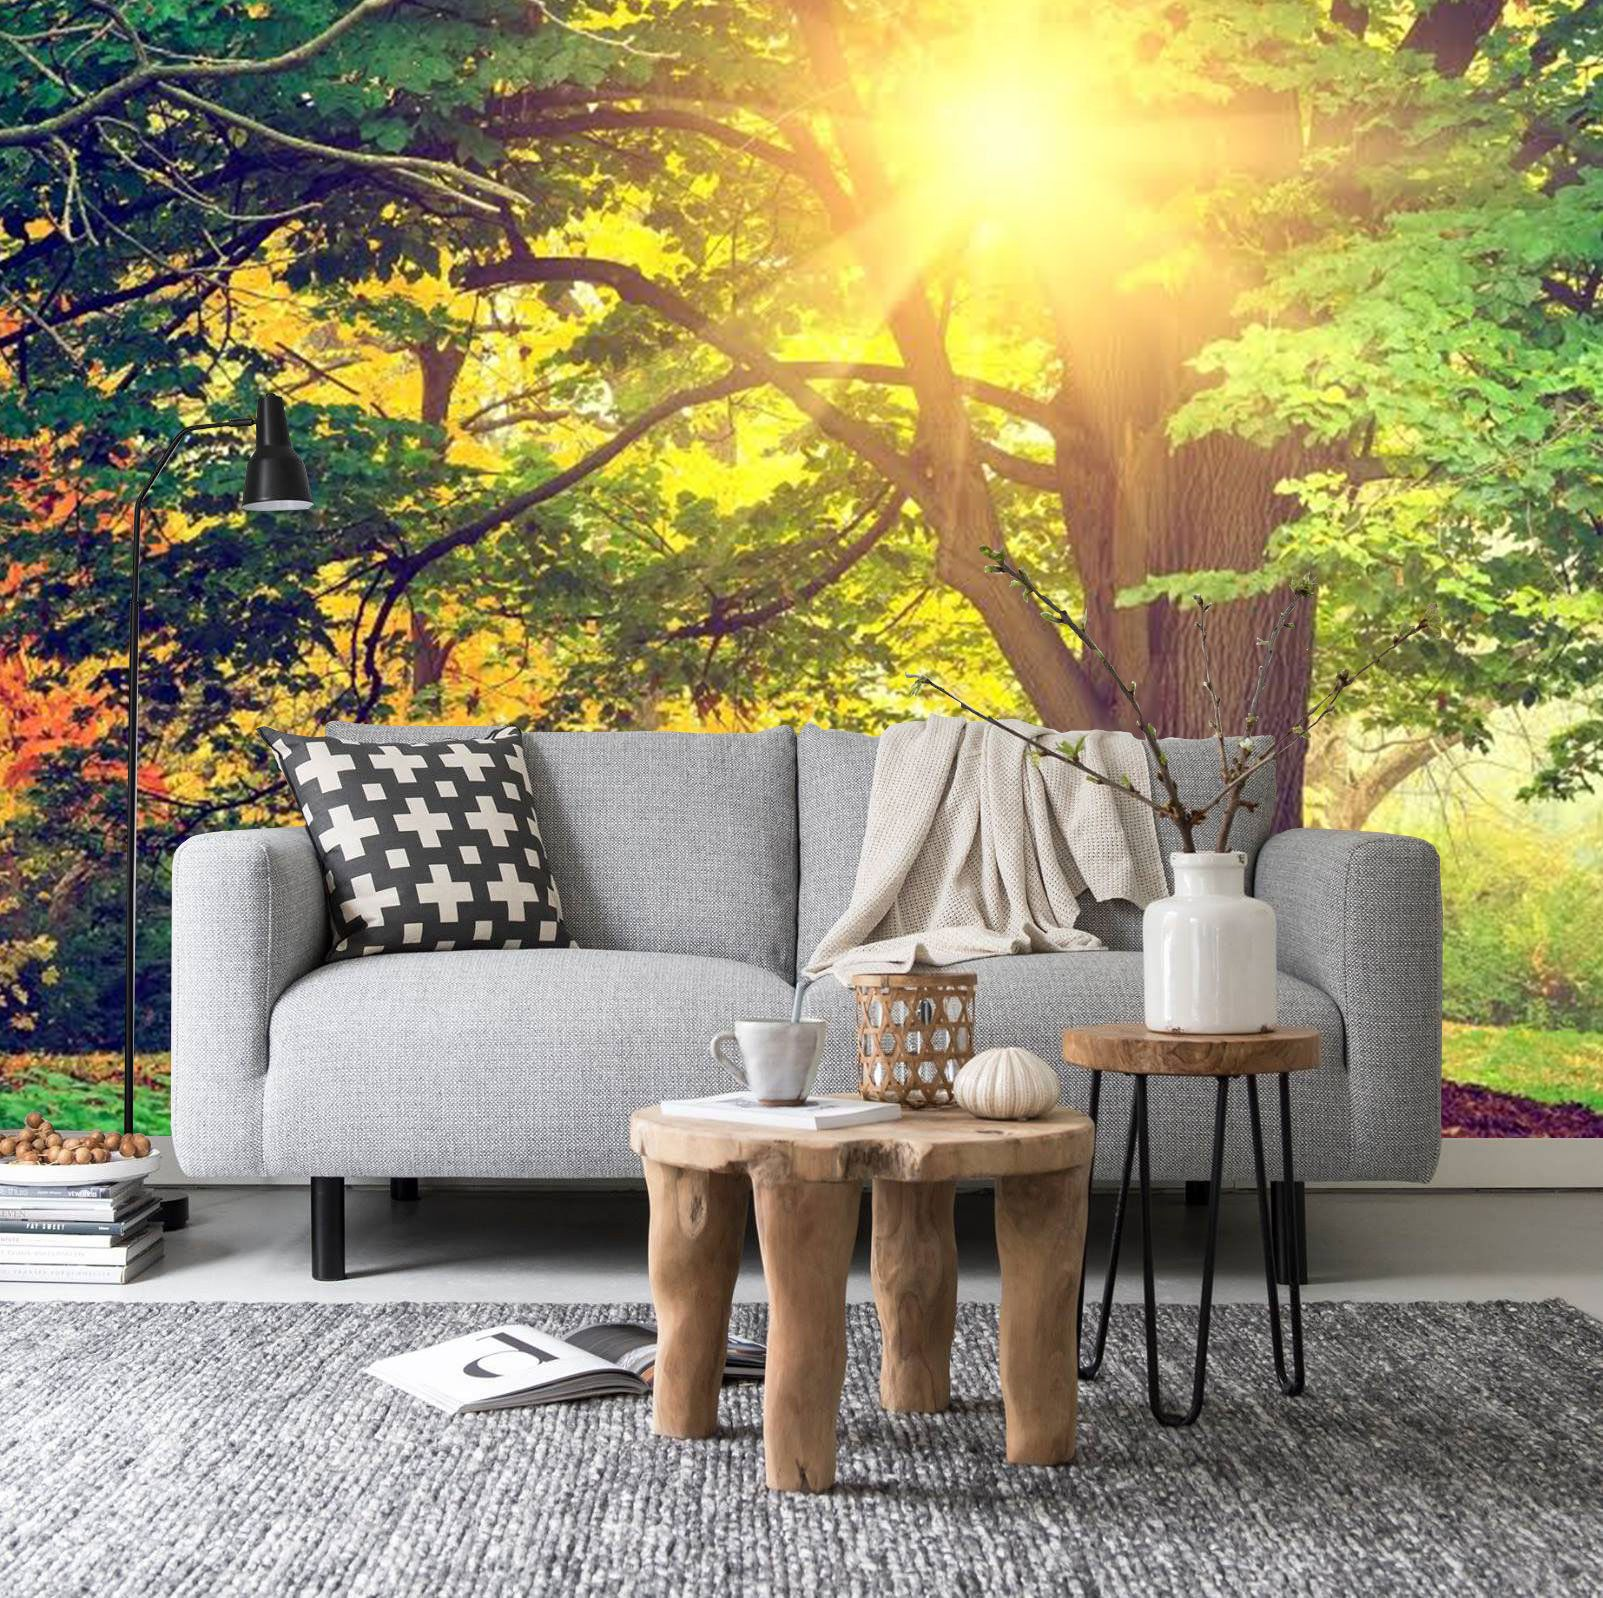 Sunbeam Through the Trees Wall Mural, Bright Forest